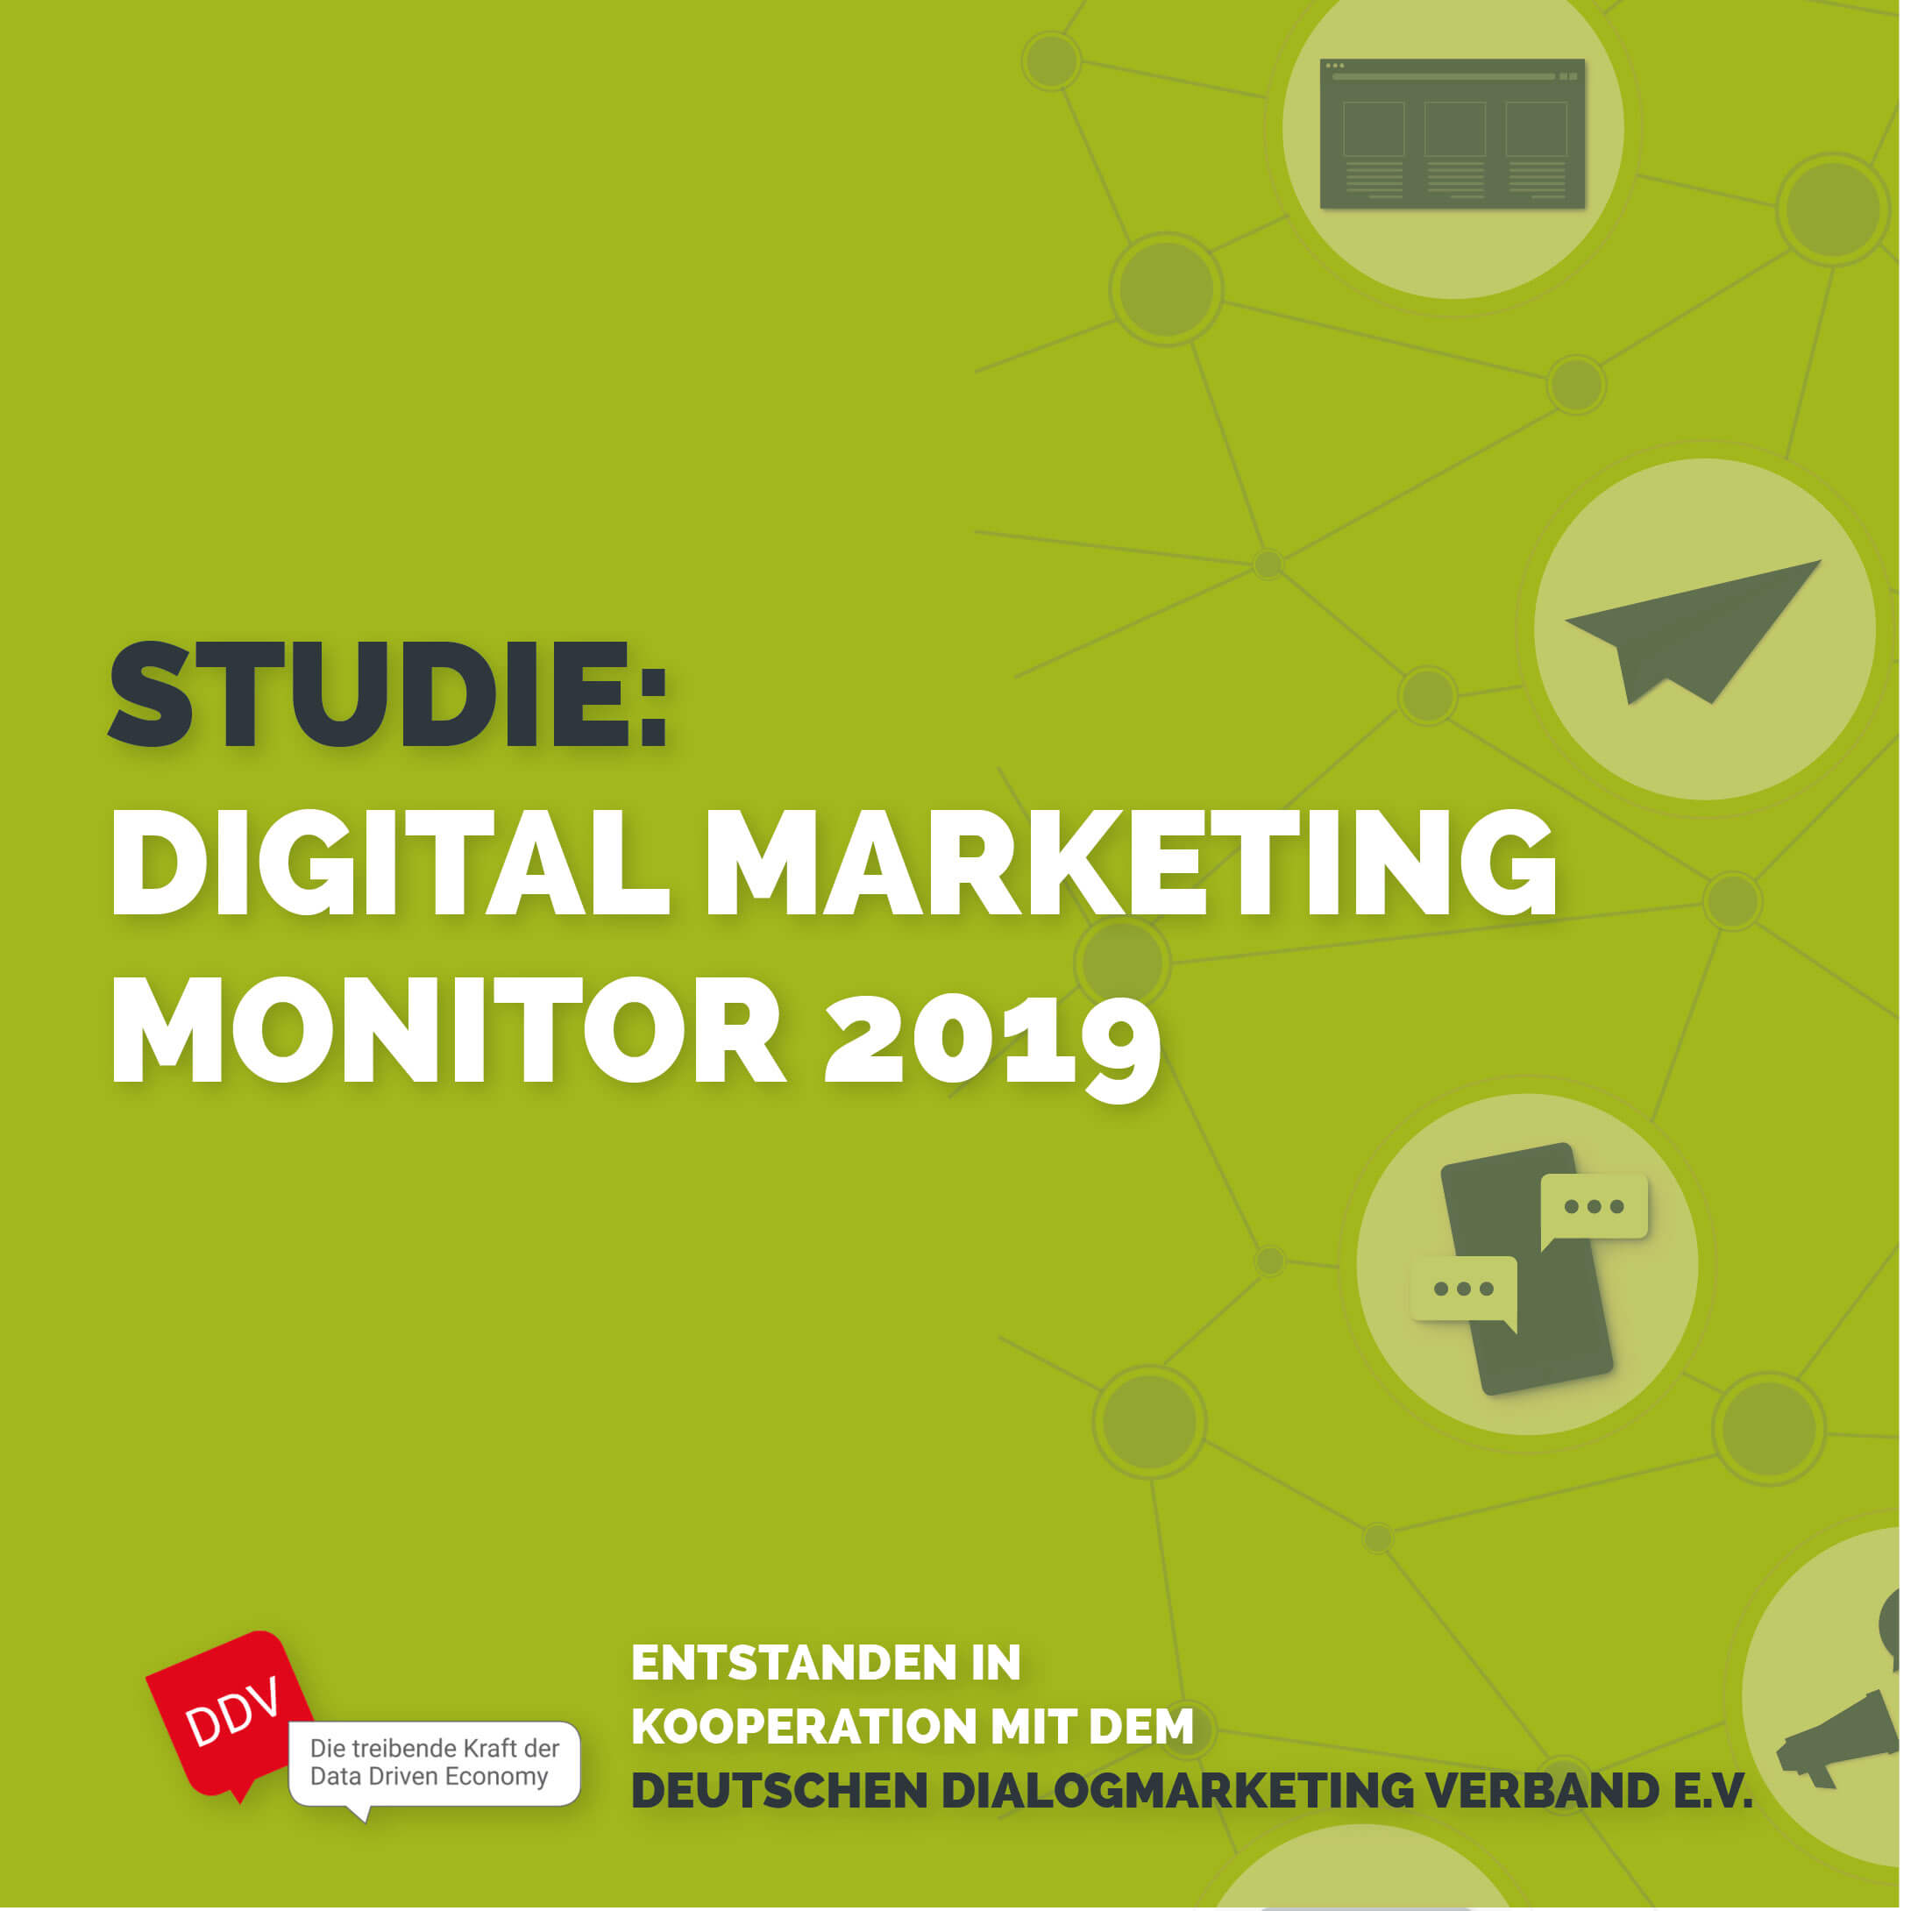 Digital Marketing Monitor 2019